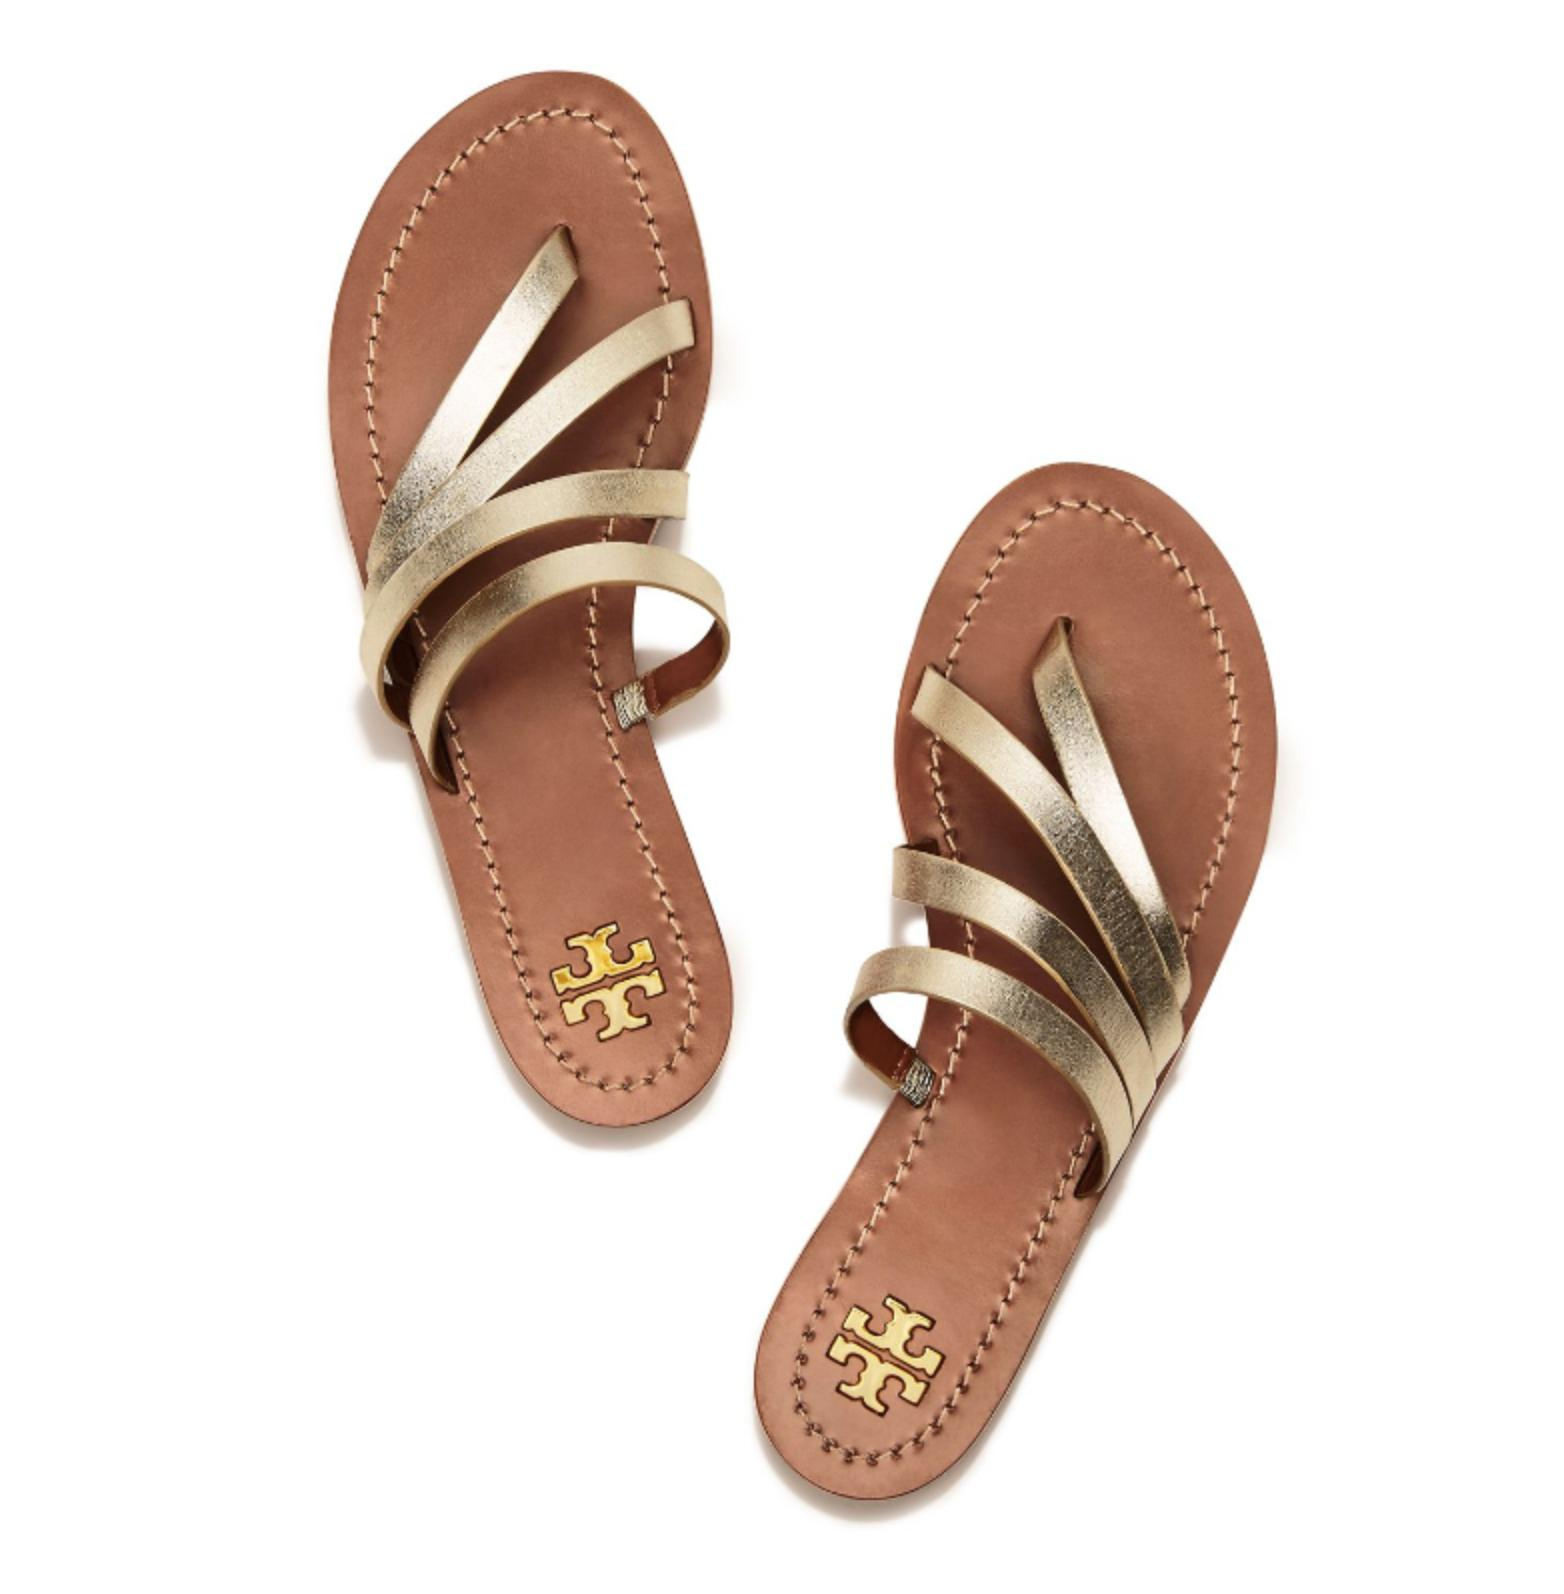 Tory Burch Patos Gladiator Slide Gold Sandals ...